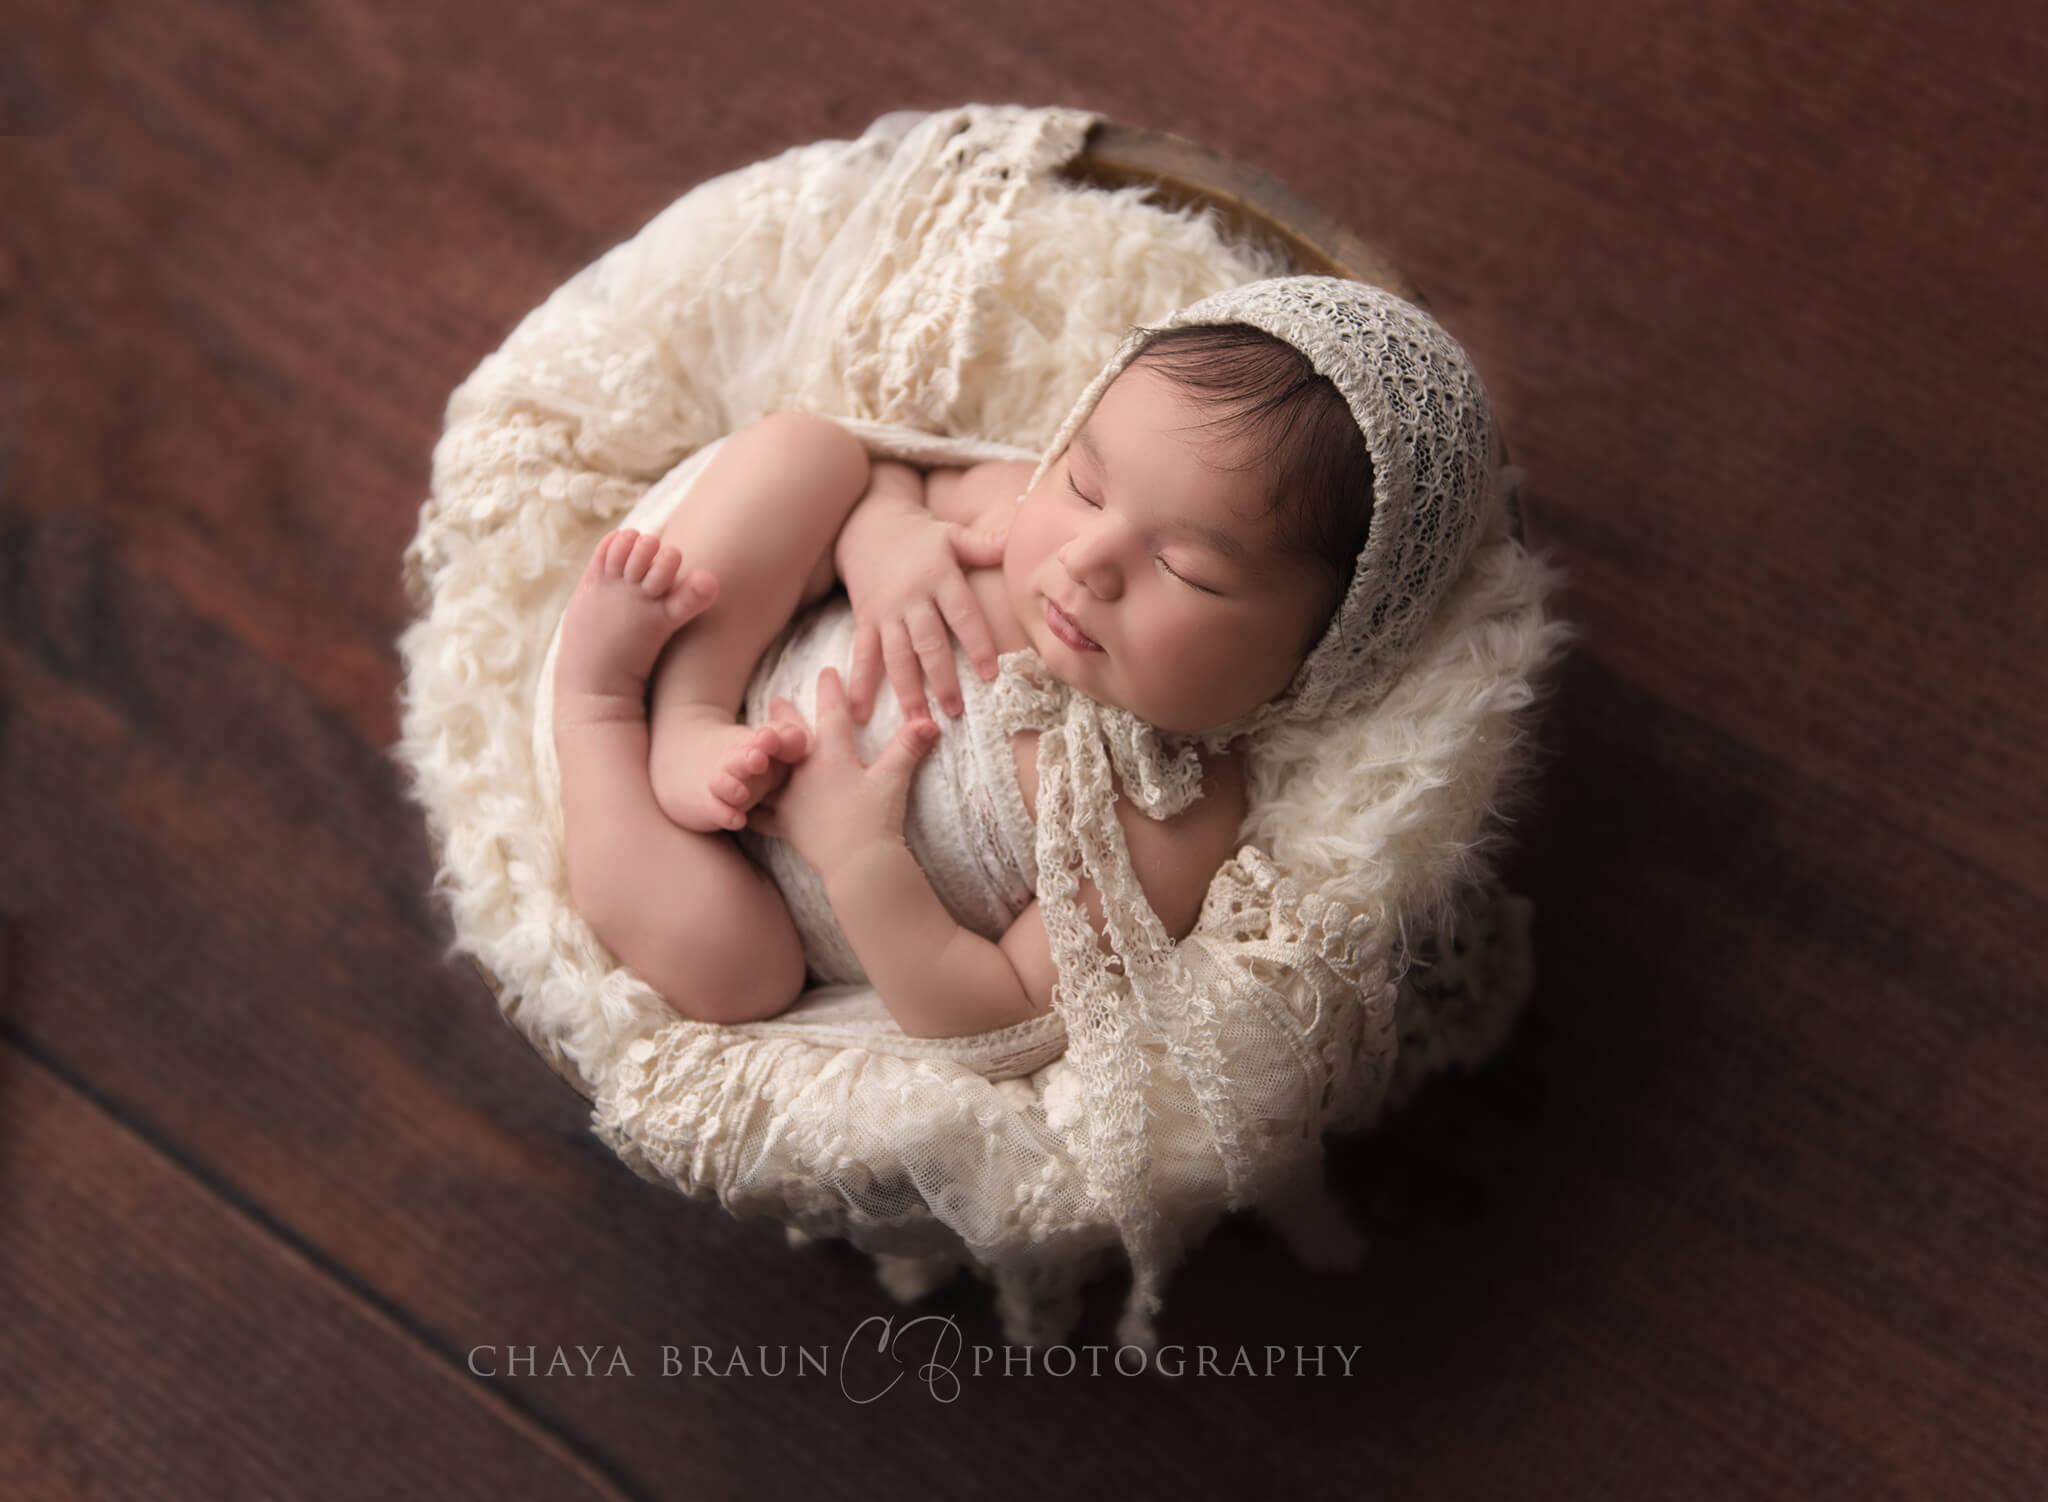 Newborn photography in Maryland